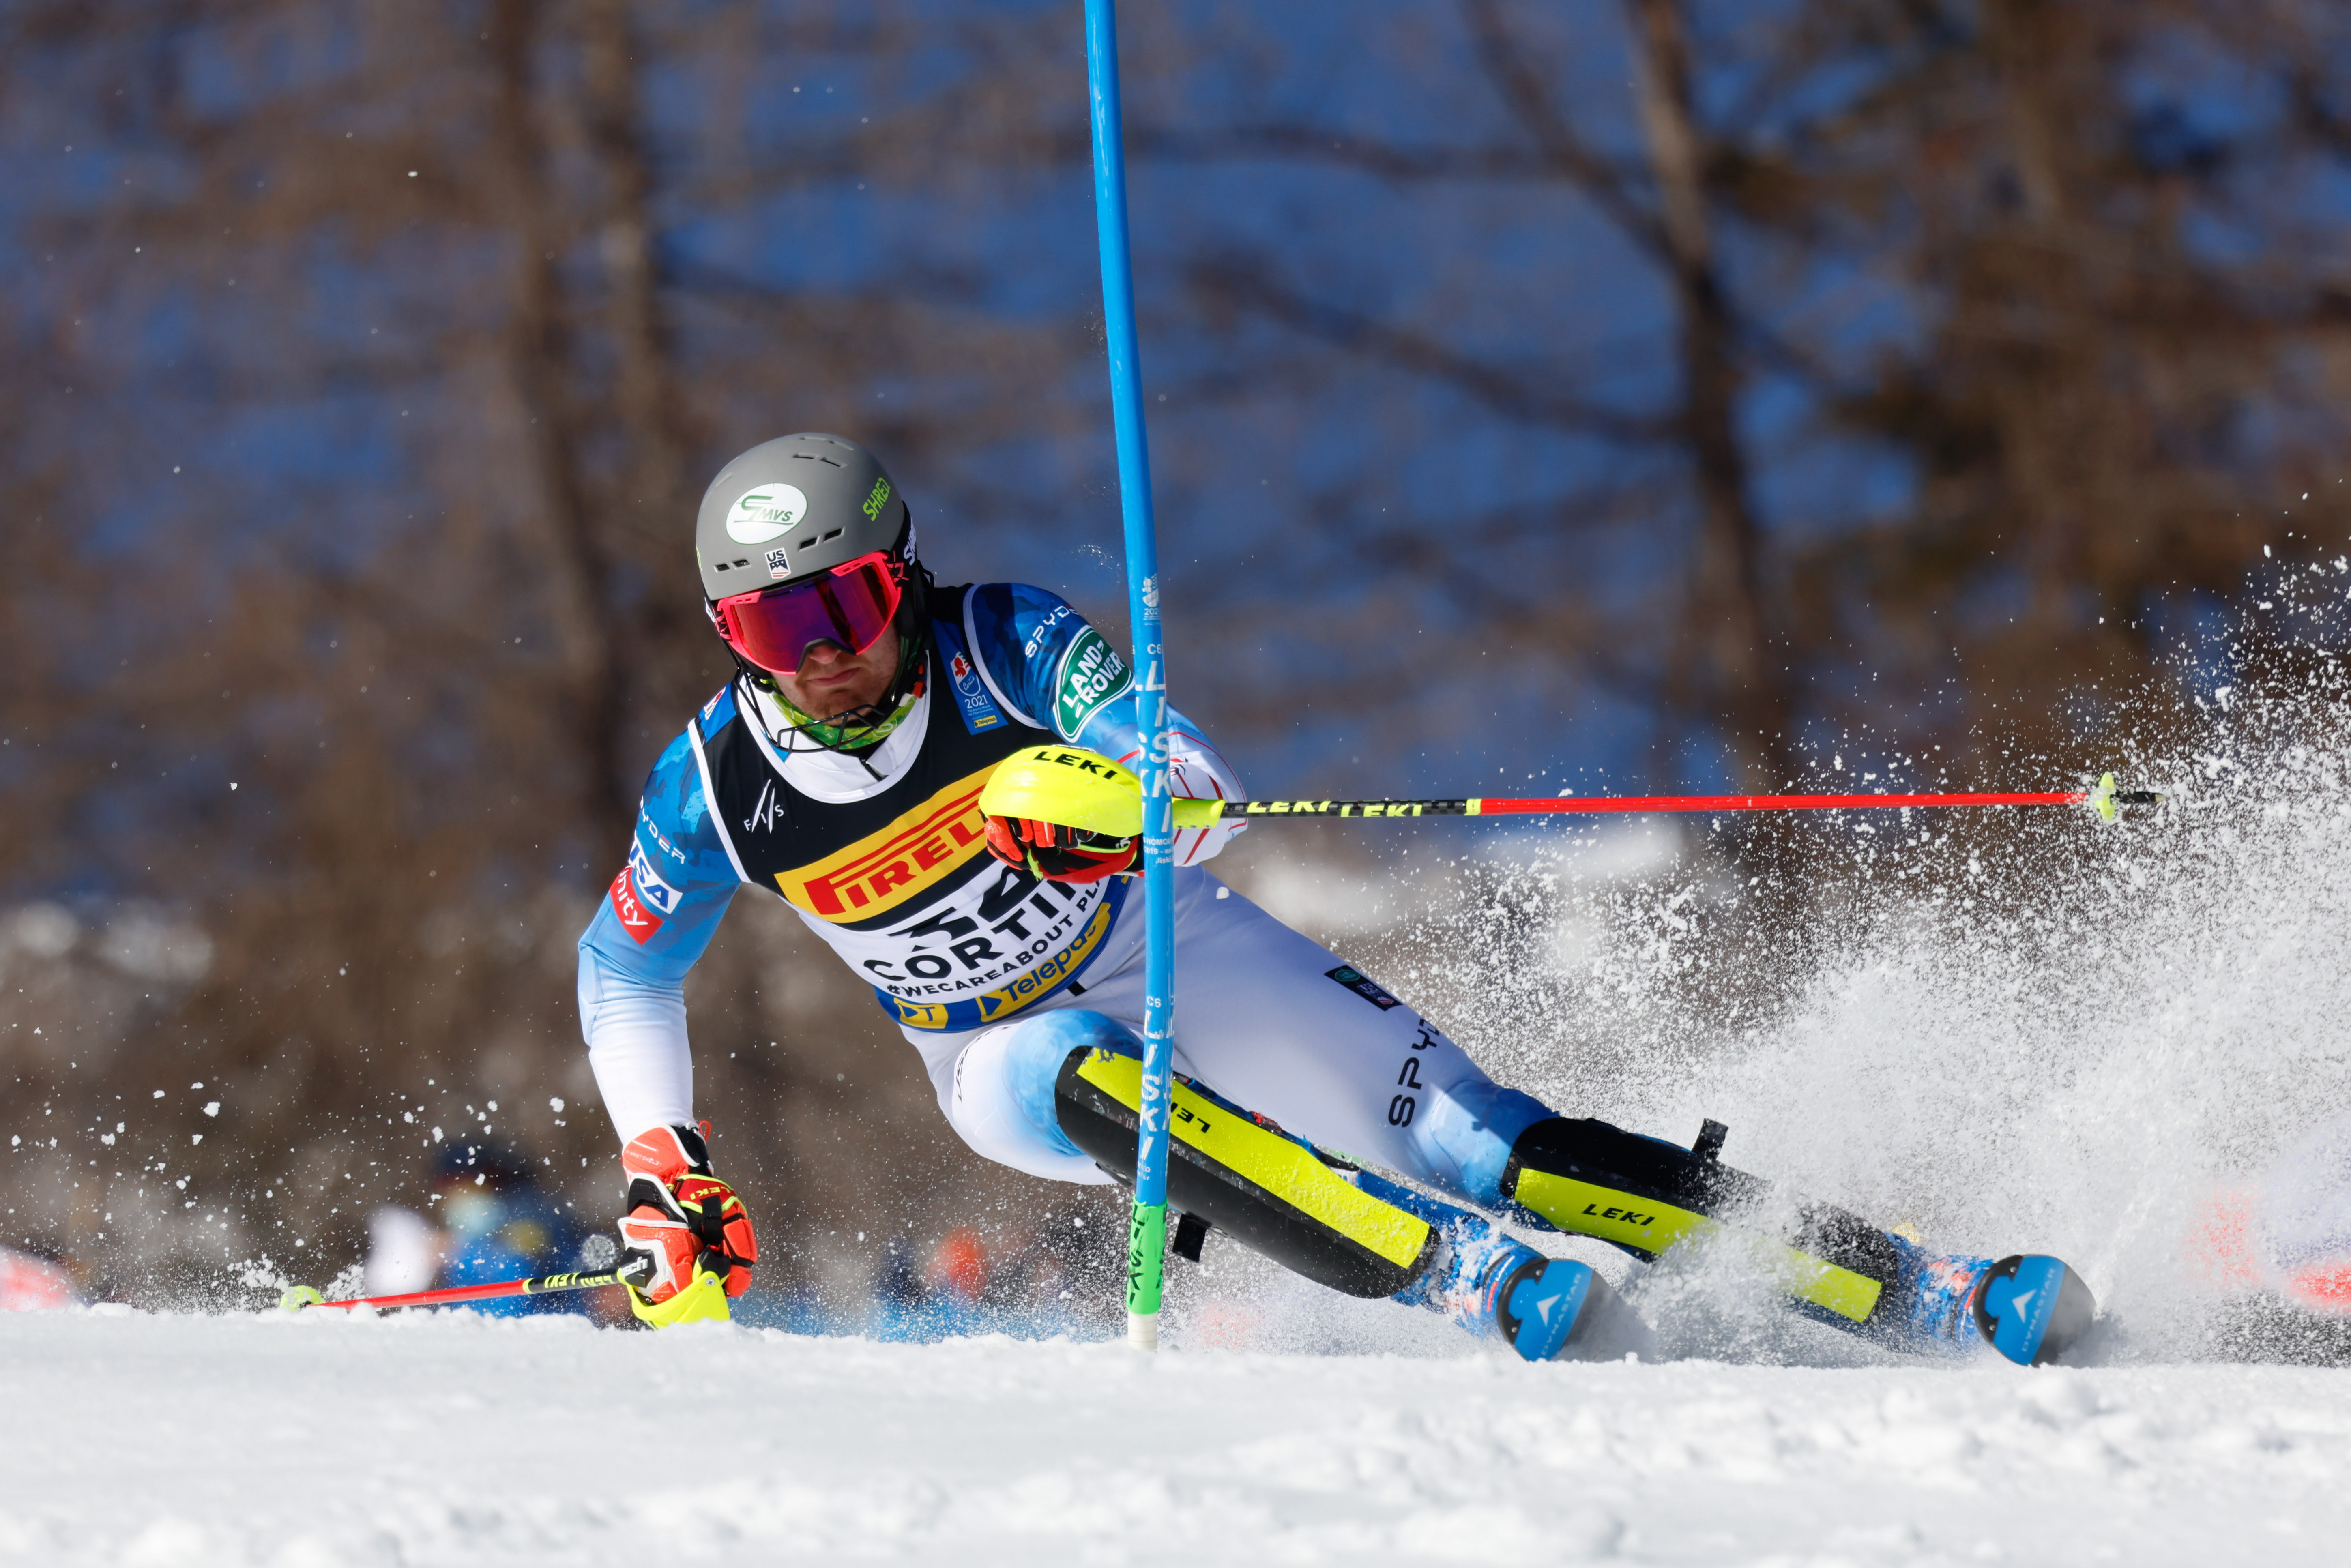 Ben Ritchie Career-Best 13th at Cortina Slalom